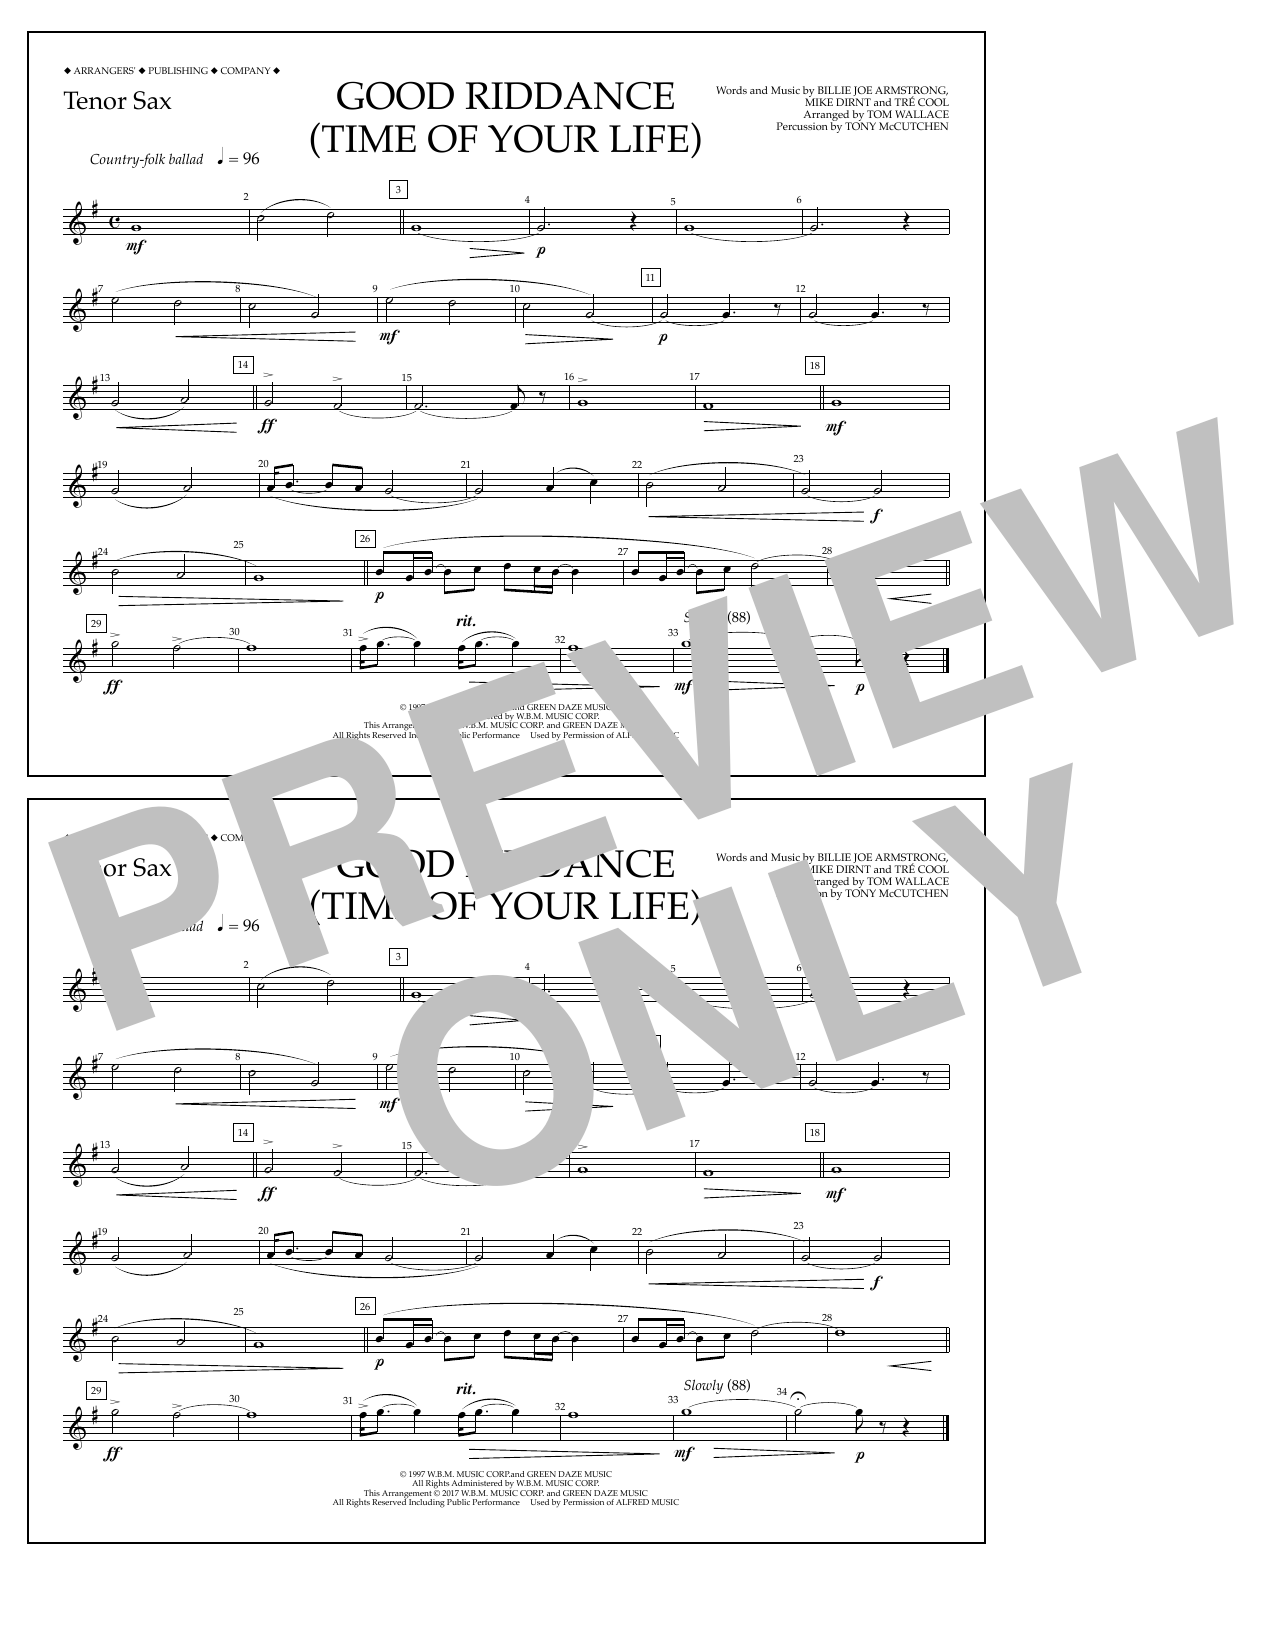 Good Riddance (Time of Your Life) - Tenor Sax Sheet Music